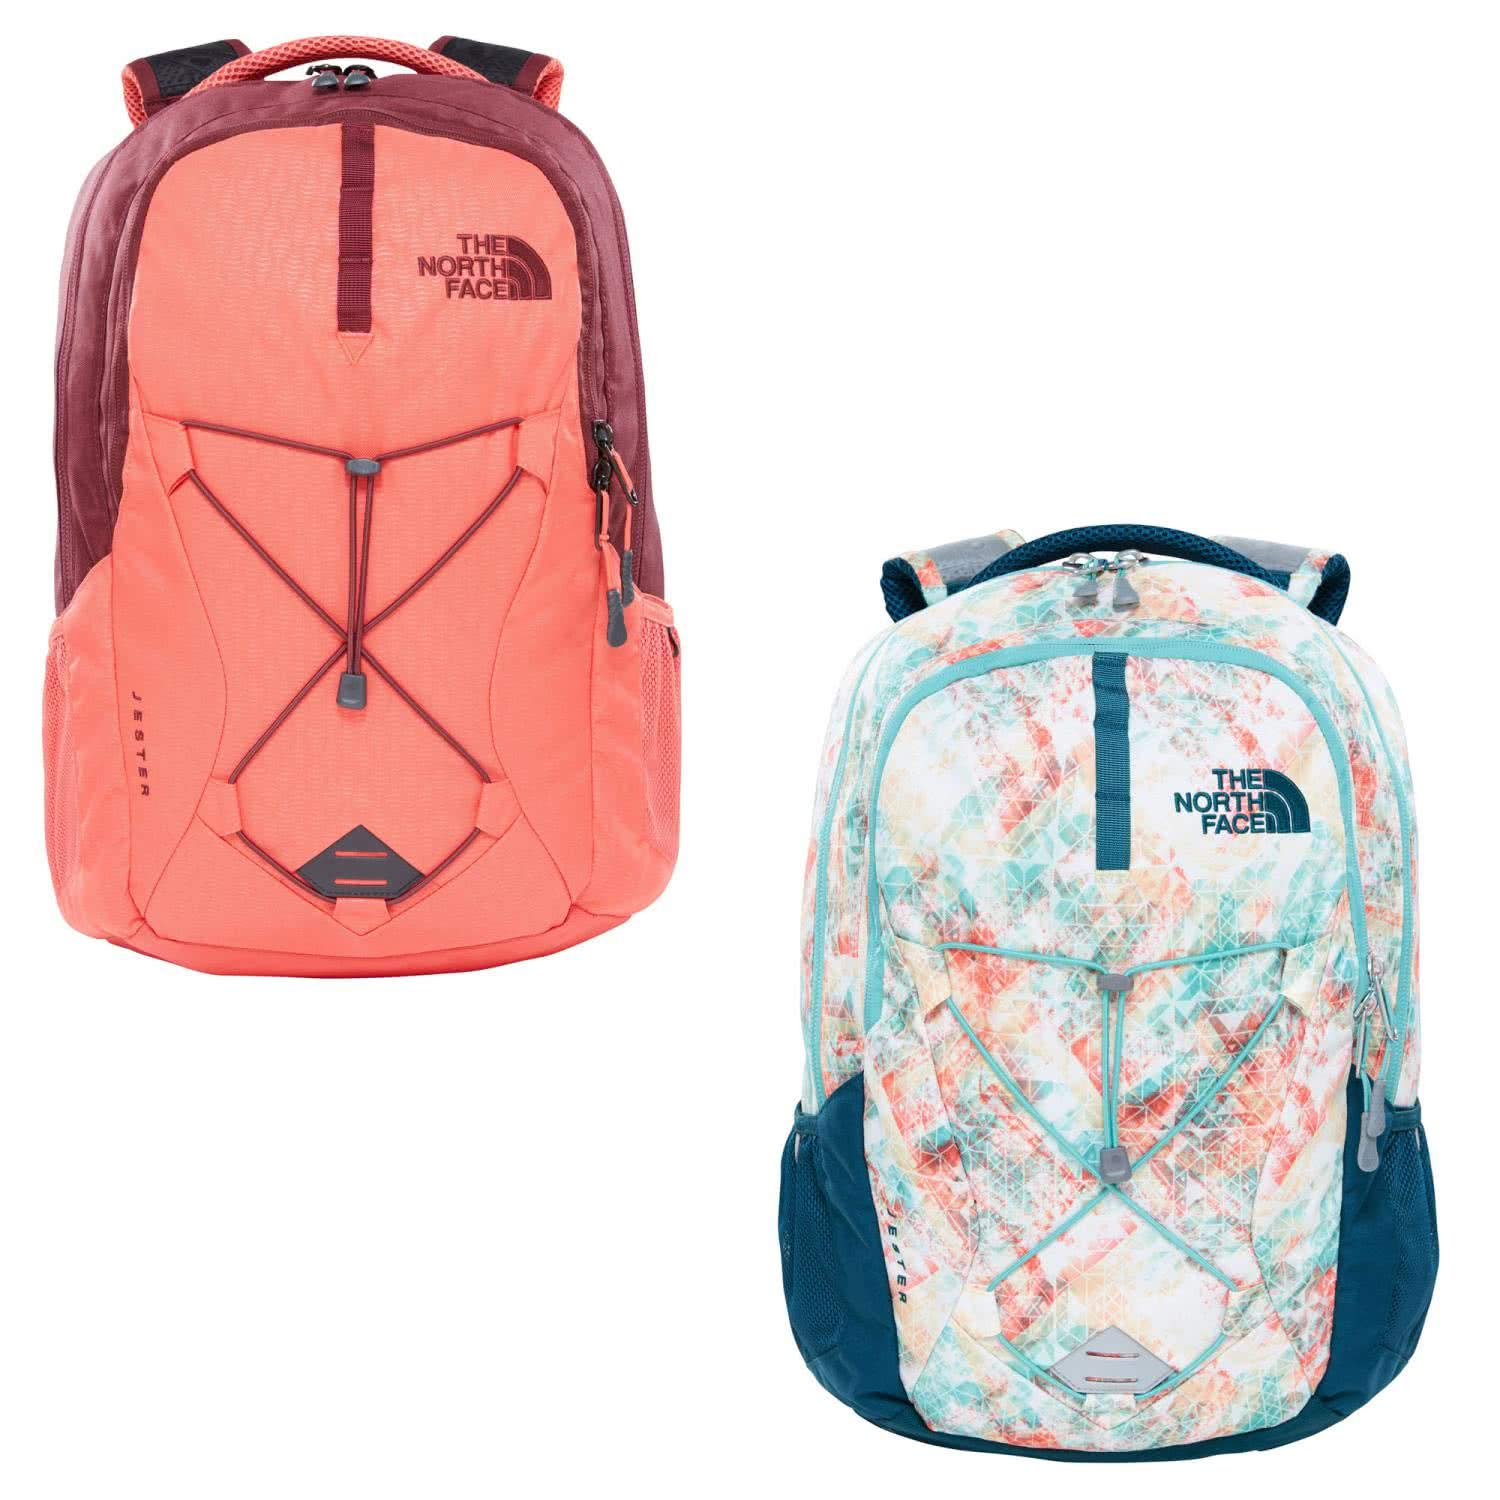 The North Face Women's Jester Laptop Backpack 15''- Sale Colors (Blue Coral